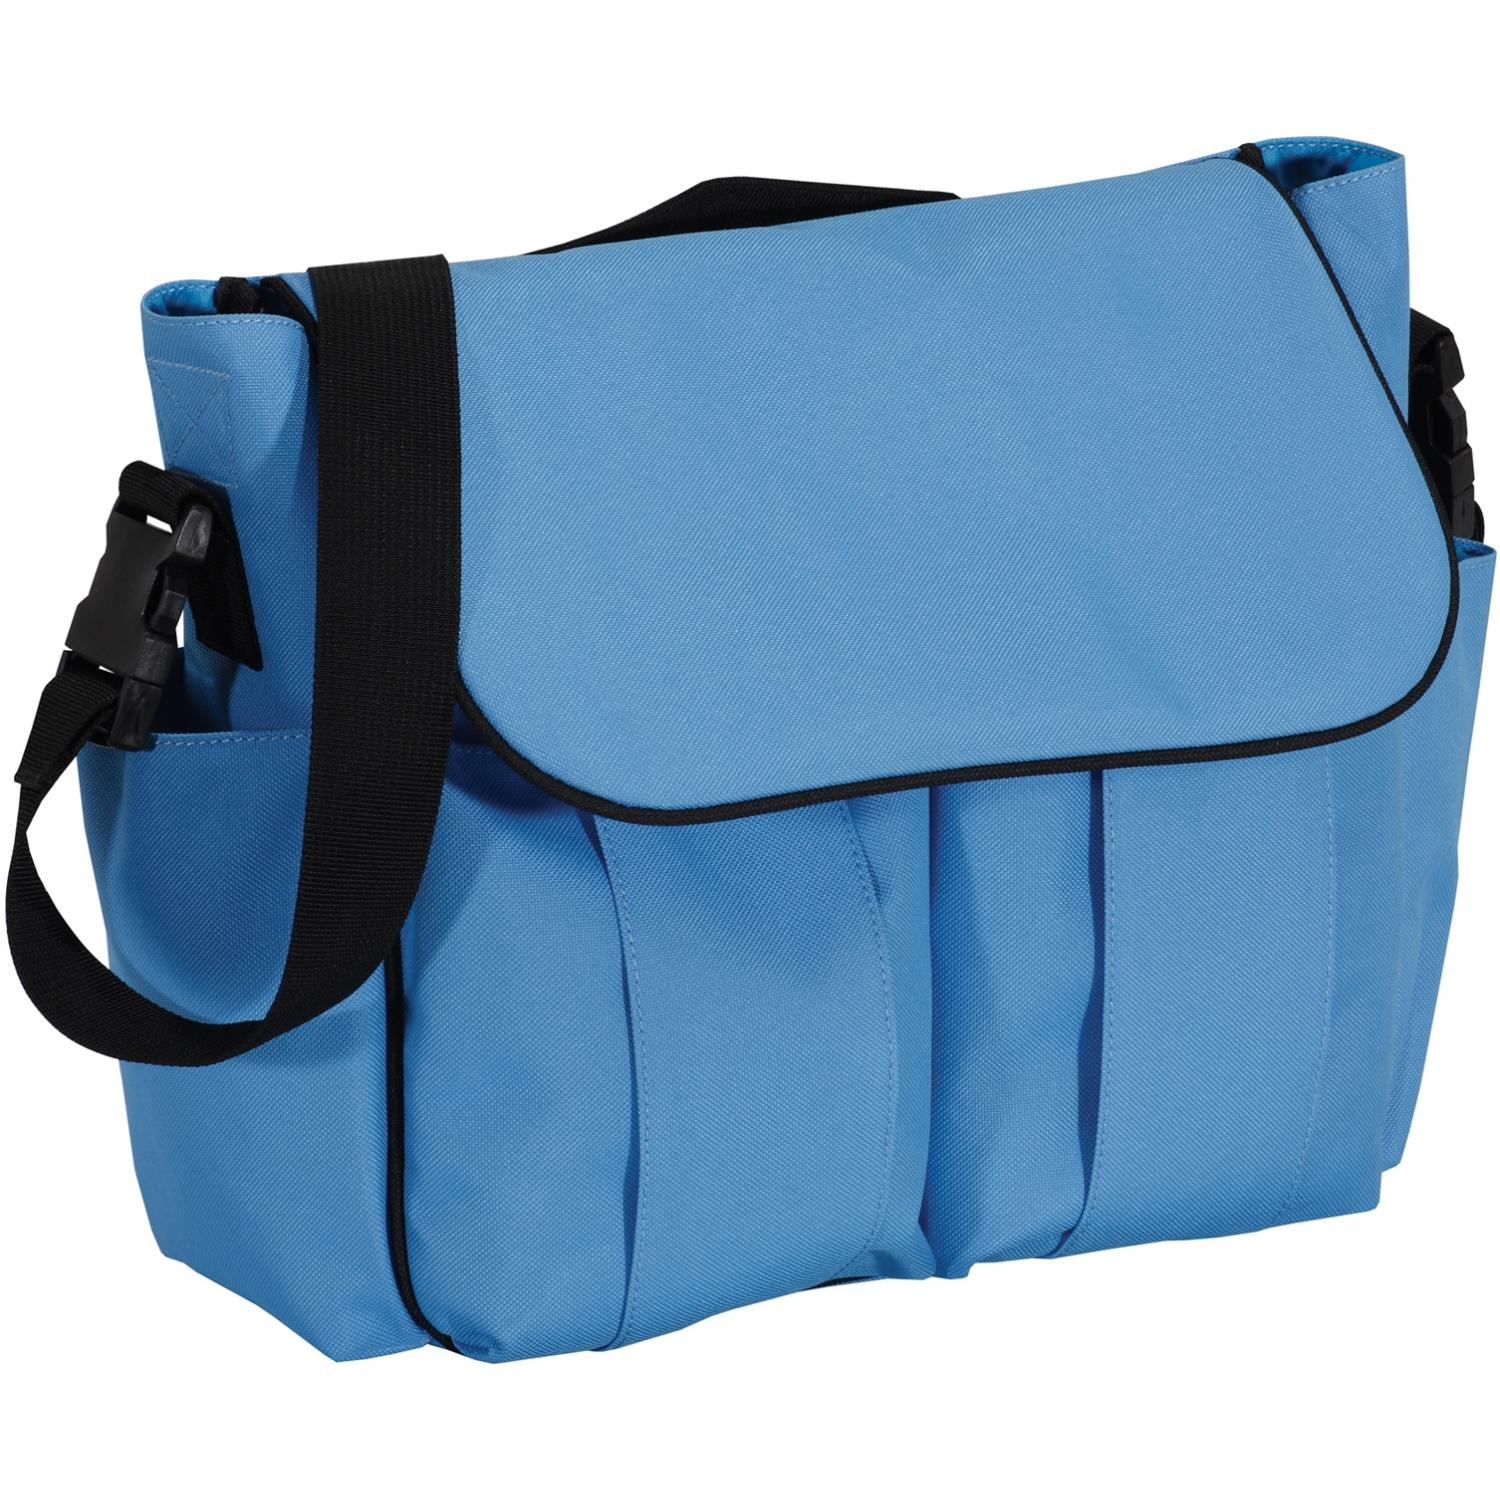 Precious Cargo Diaper Bag - Ultramarine Blue